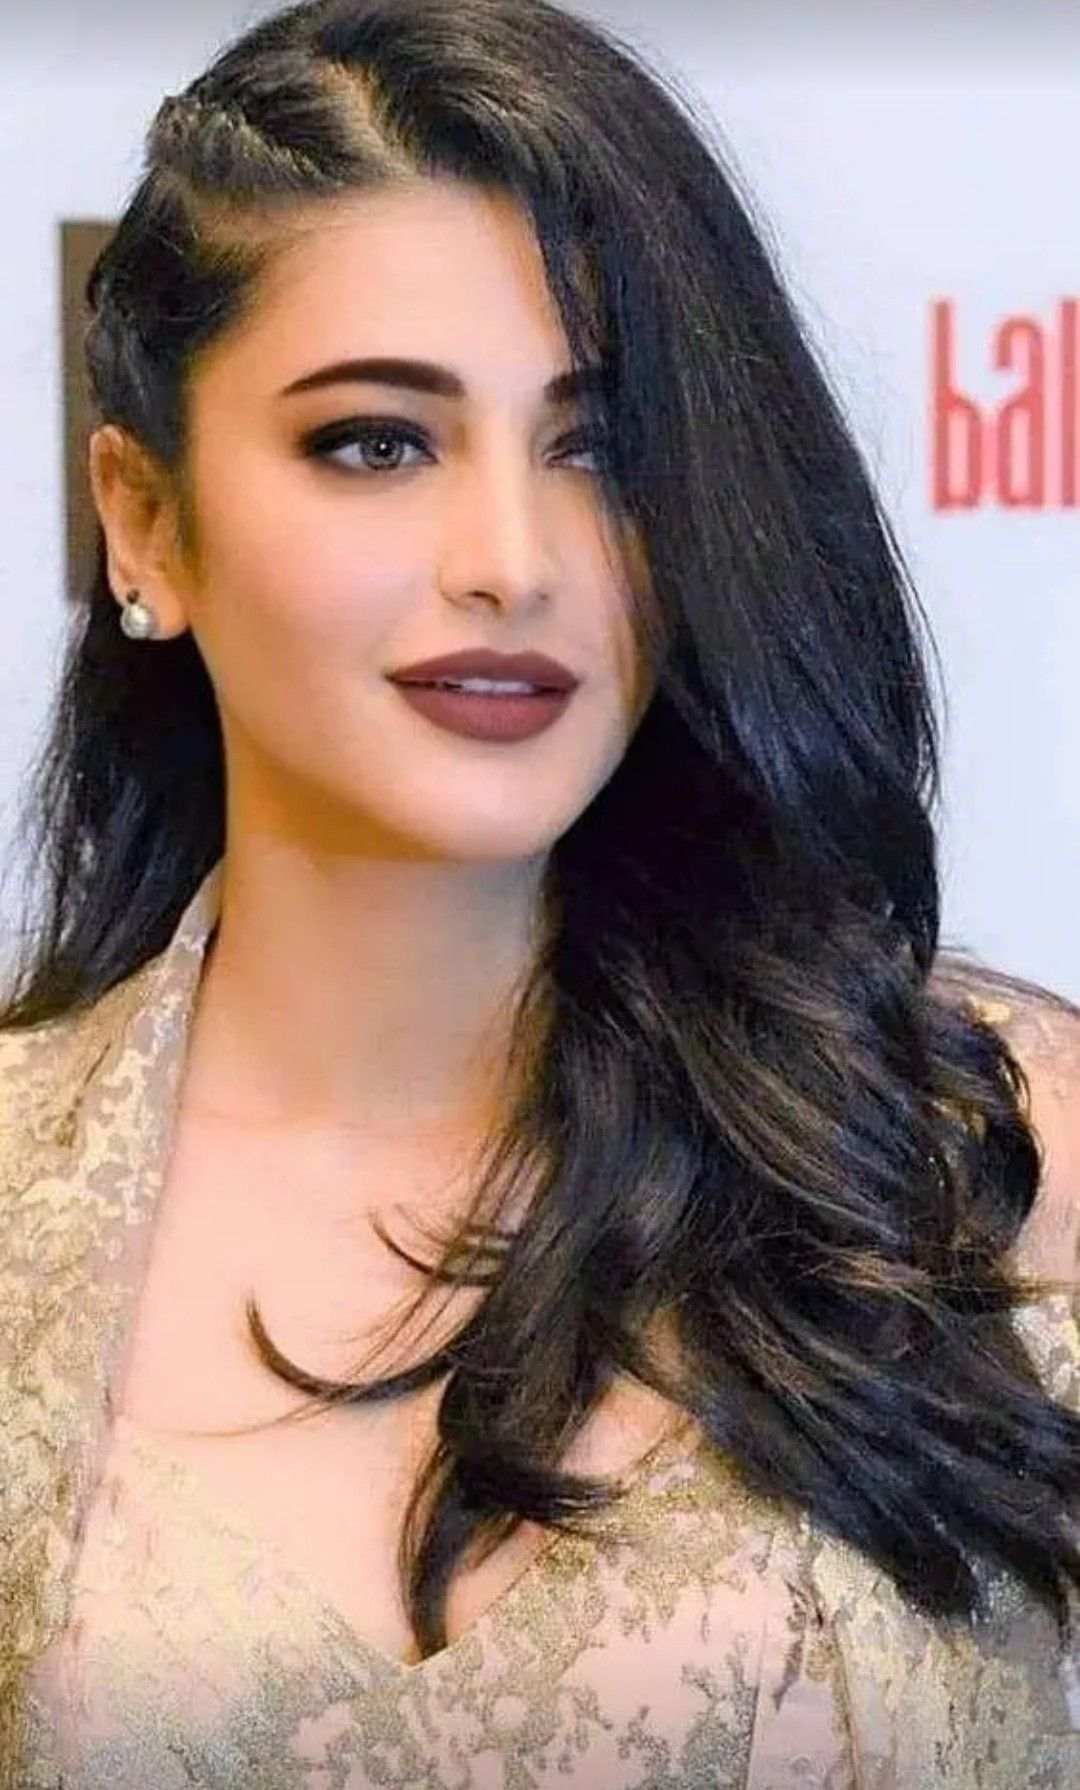 Pin By Moulay Lalaoui On Moulaylalaoui Oran 31000 Bollywood Hairstyles Beauty Indian Hairstyles